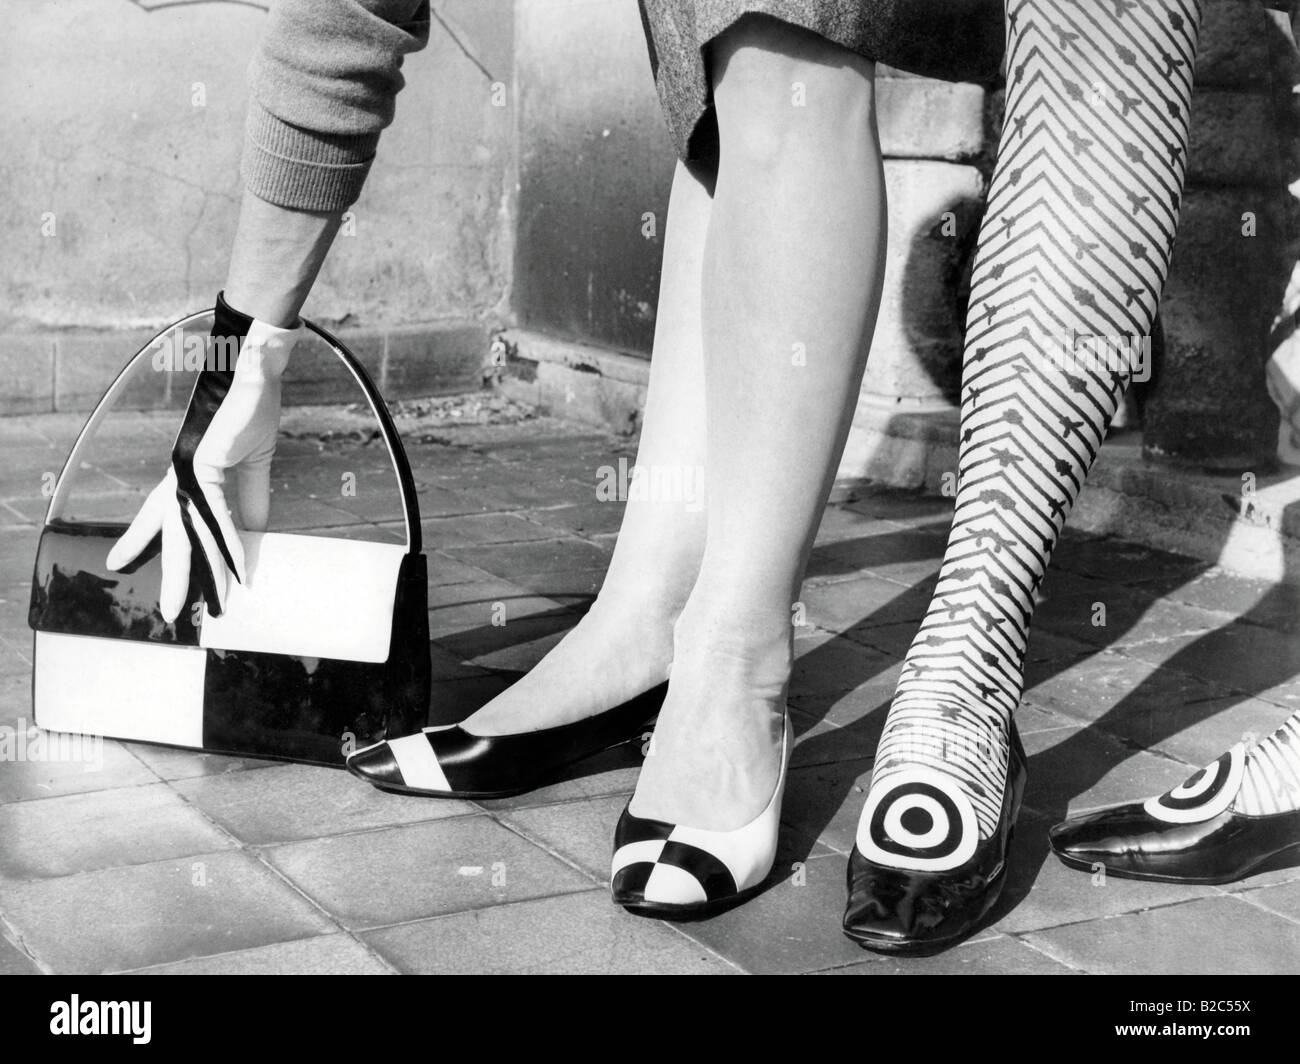 Shoes and the matching bag, historic picture from about 1955 - Stock Image